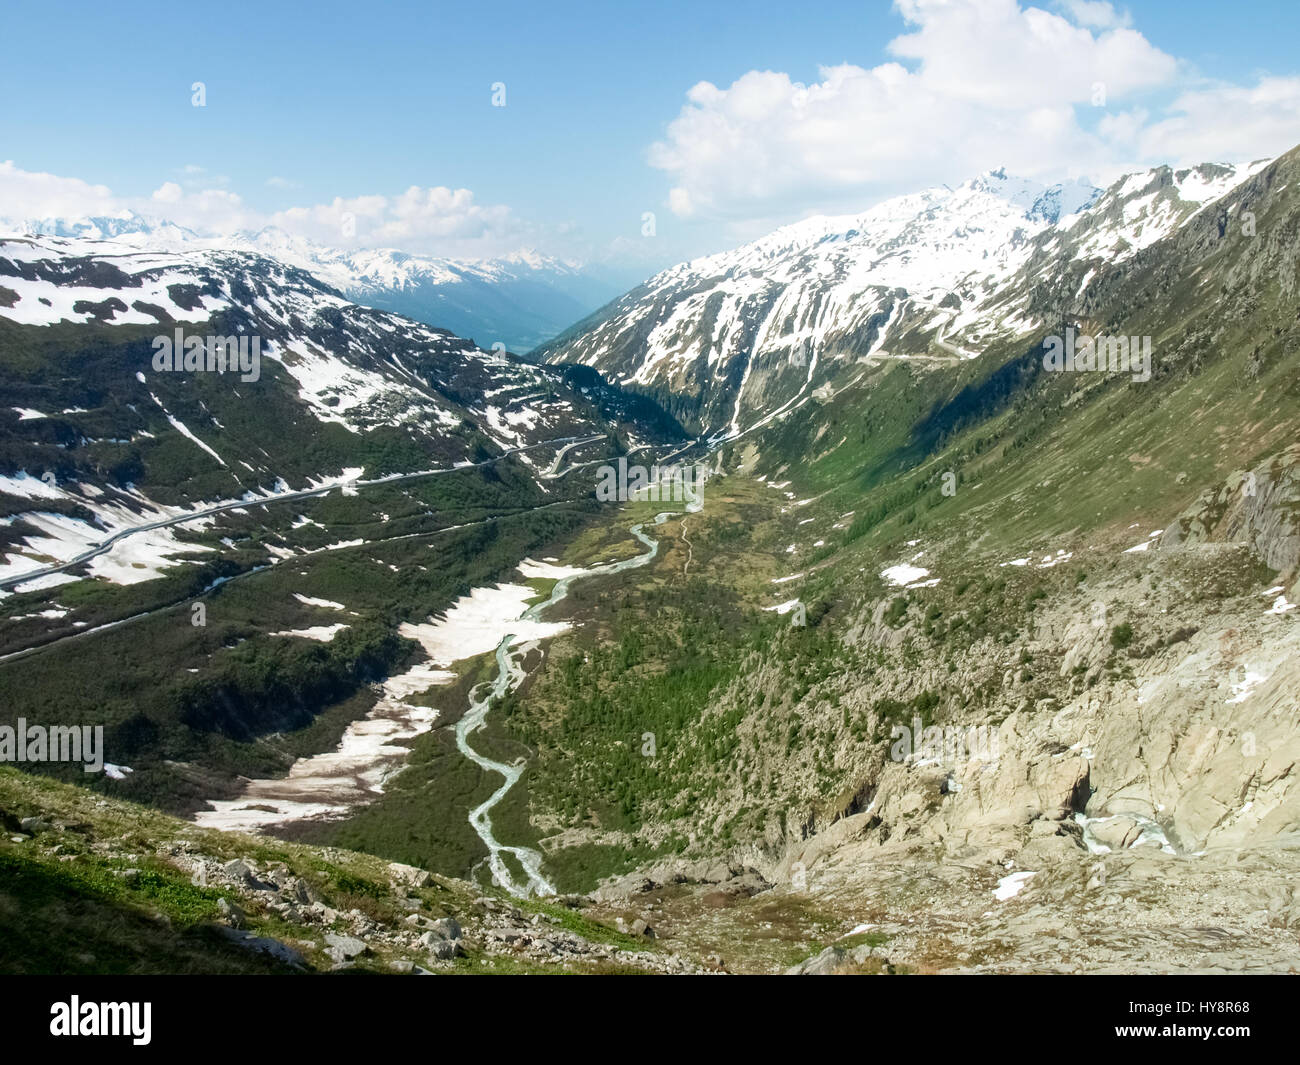 Switzerland: Canton Valais. Rhone glacier melting due to the melting of glaciers. Stock Photo